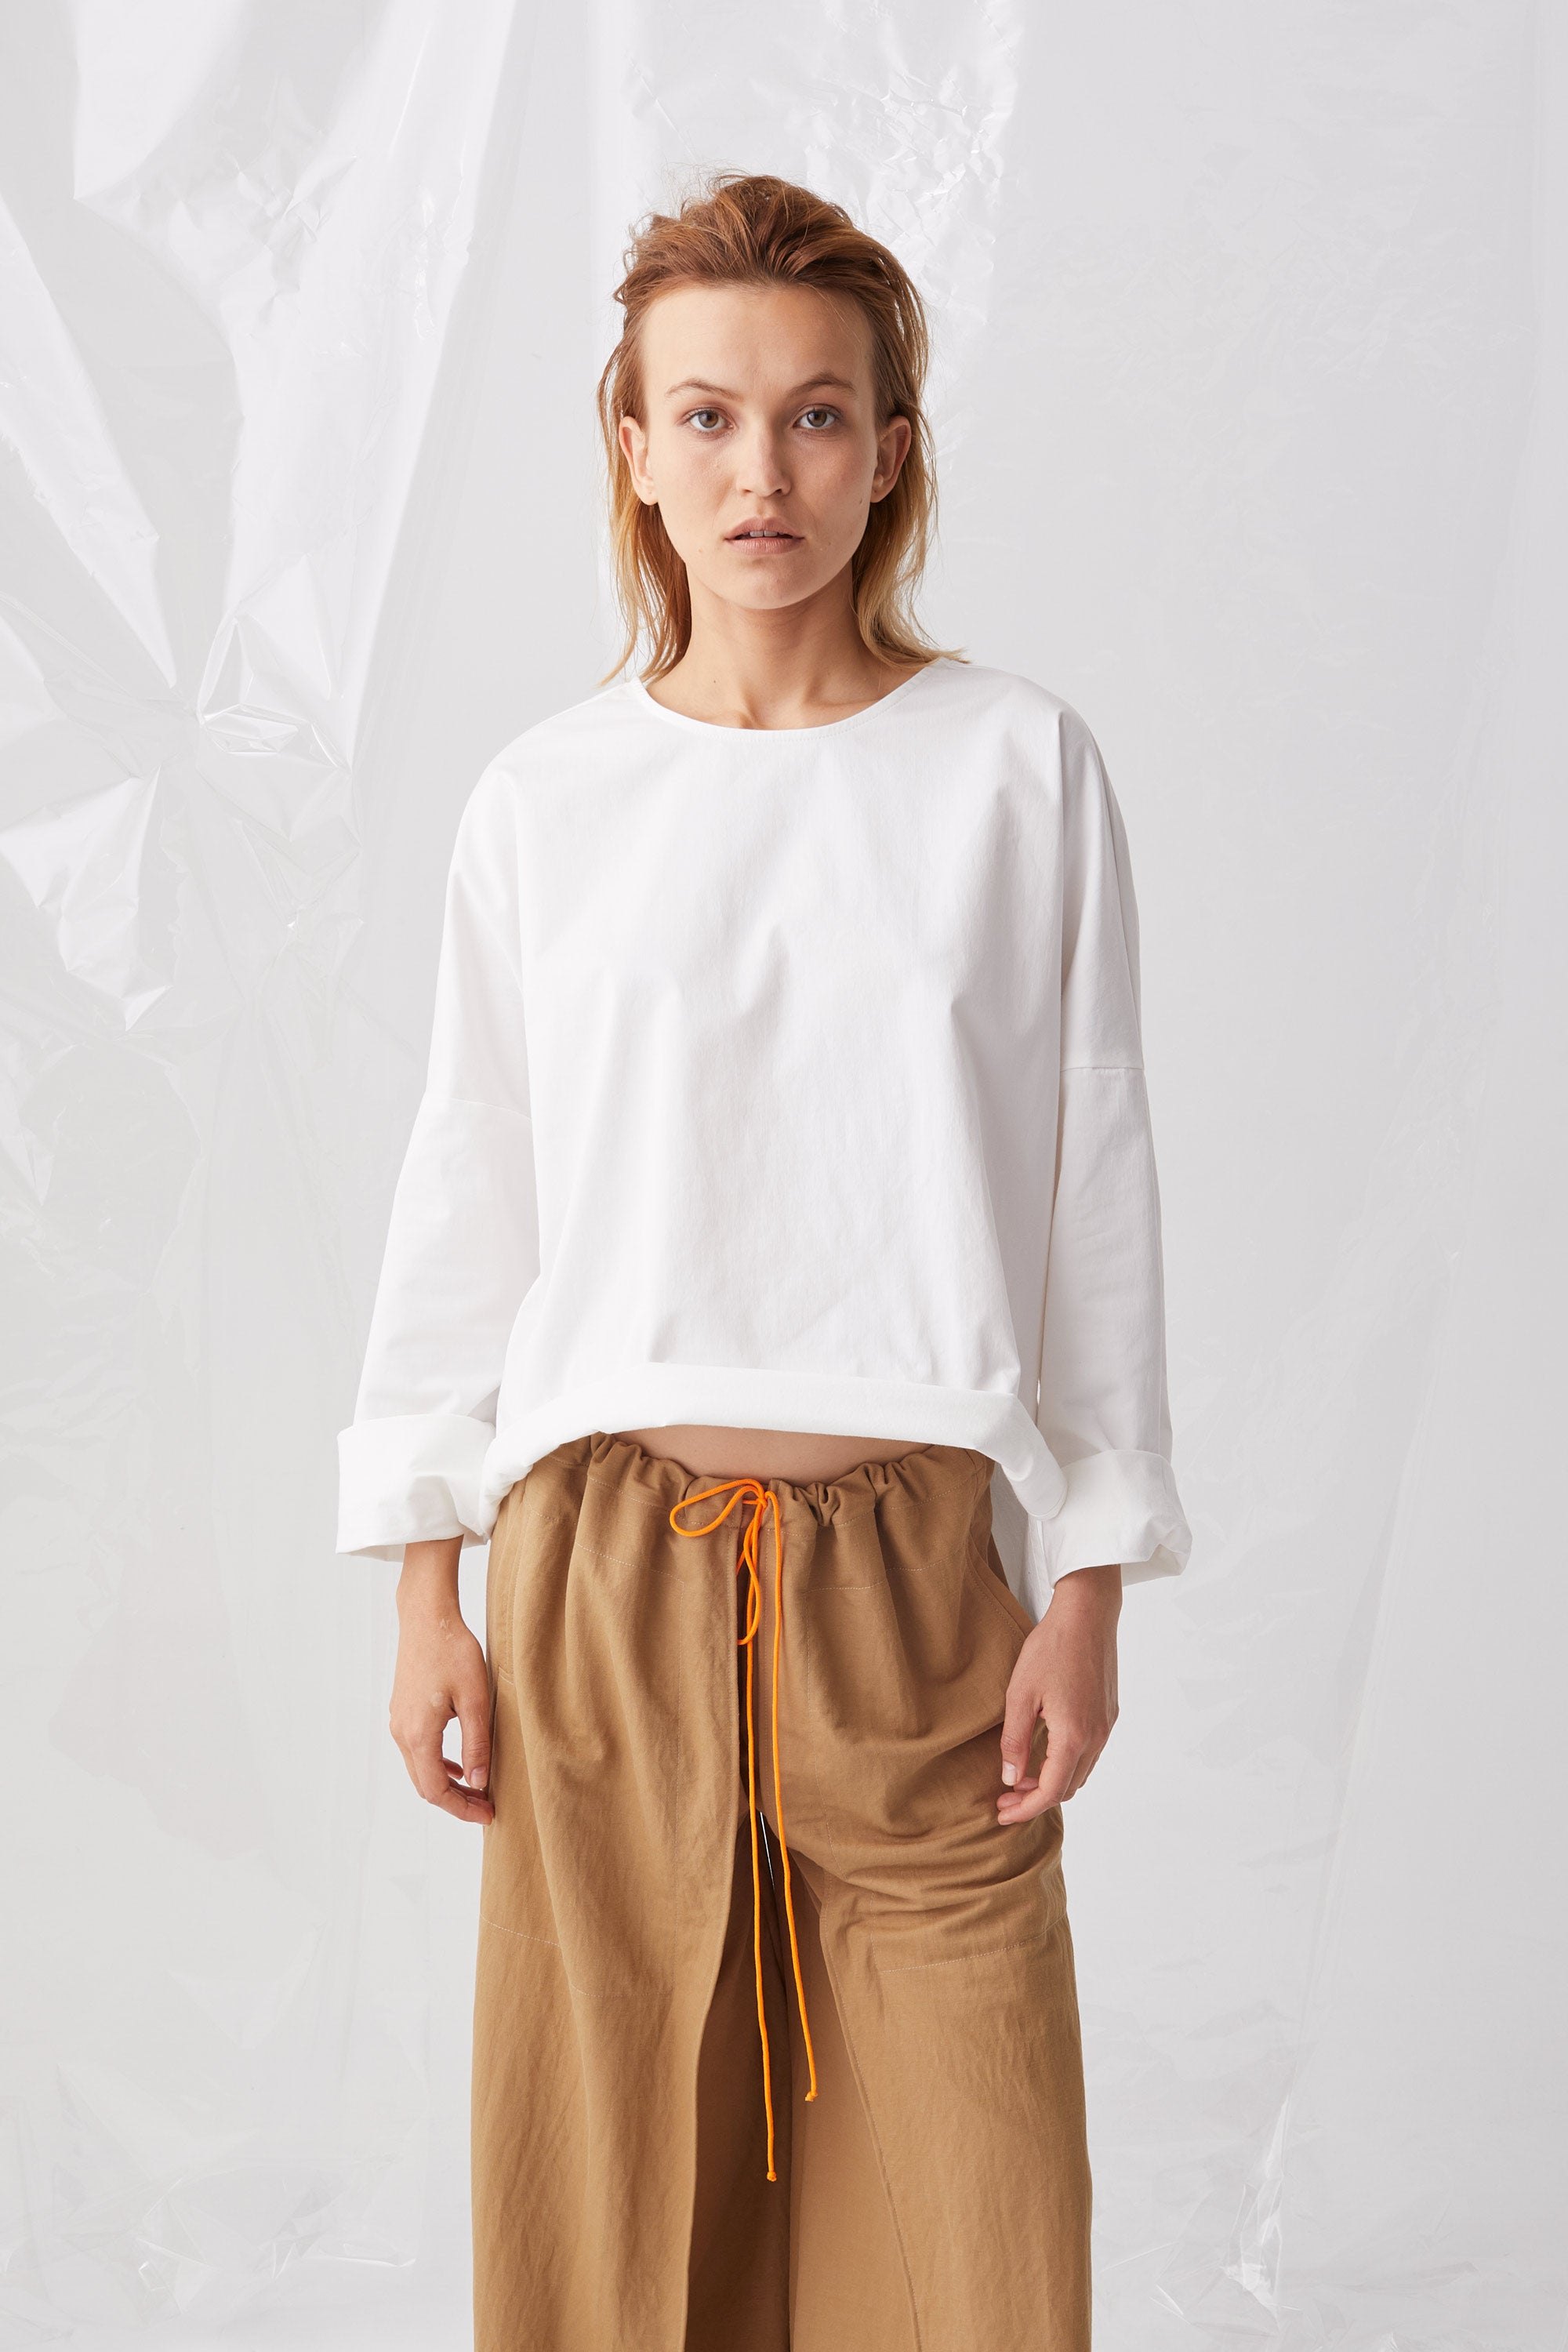 Ricochet NZ Fashion Designer Clothing Boutique SS18 Sora Top White Cotton Rolled Hem Top Made in NZ